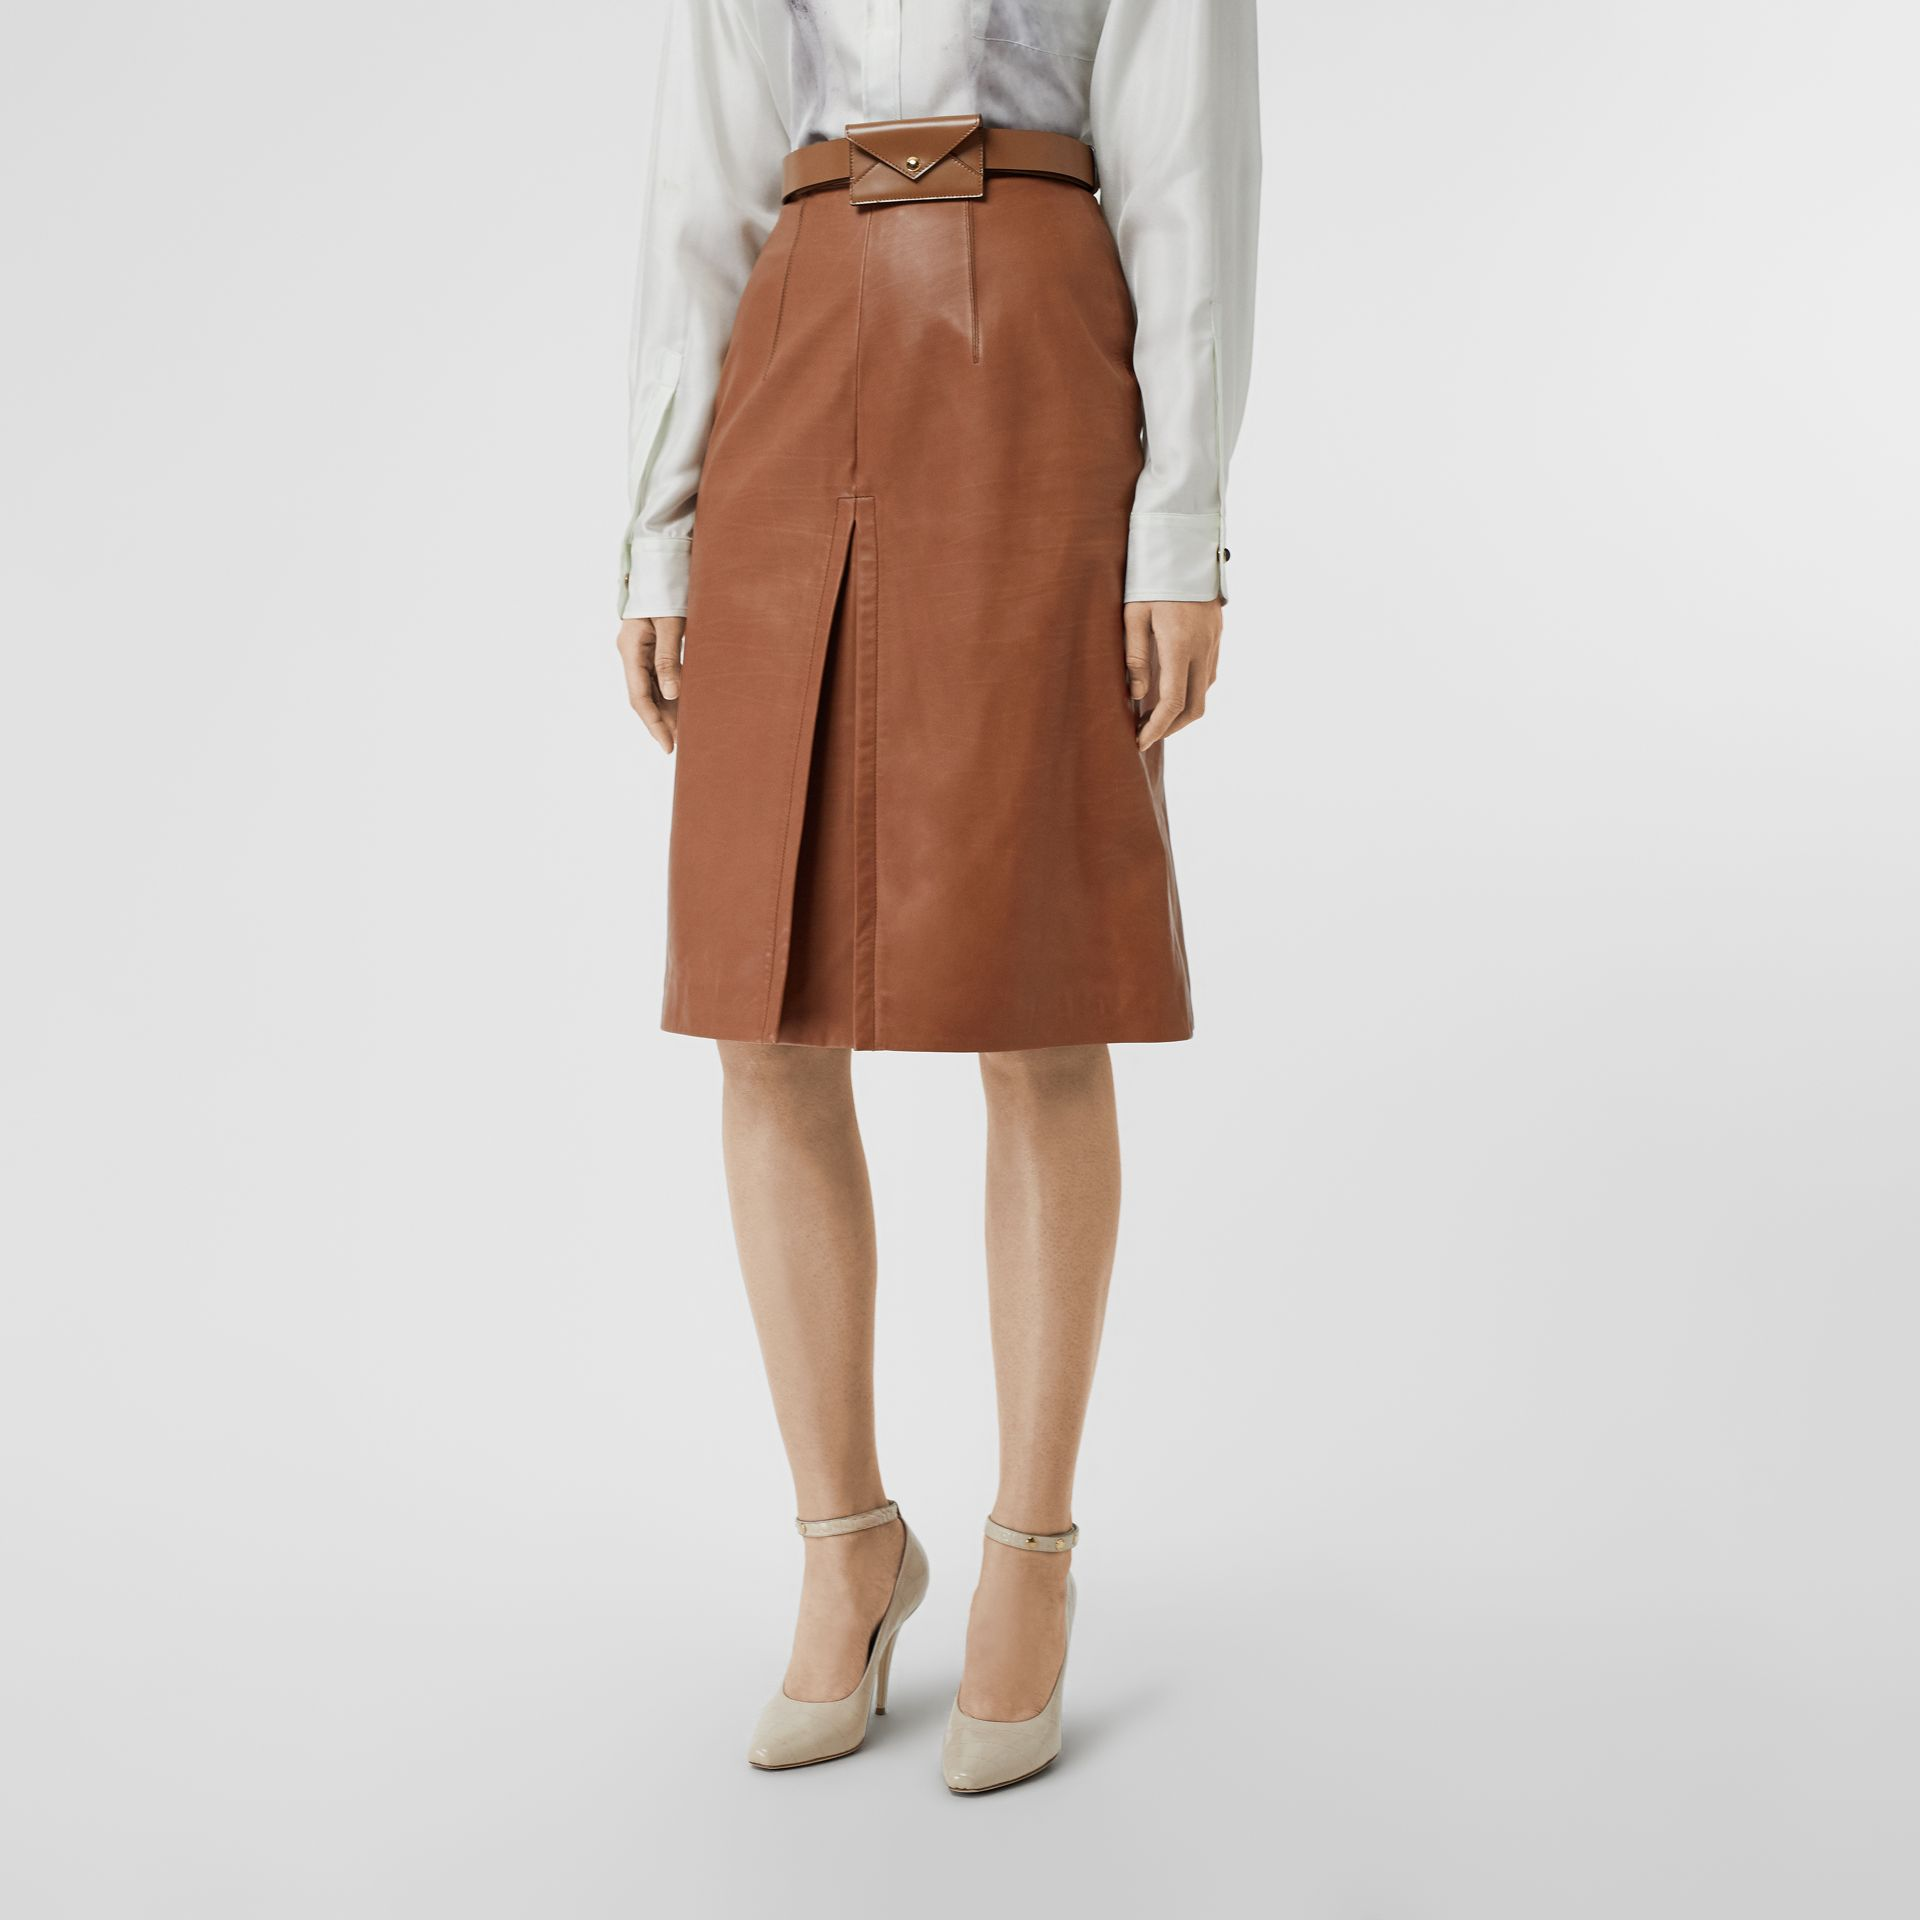 Box Pleat Detail Leather A-line Skirt in Flaxseed - Women | Burberry - gallery image 4